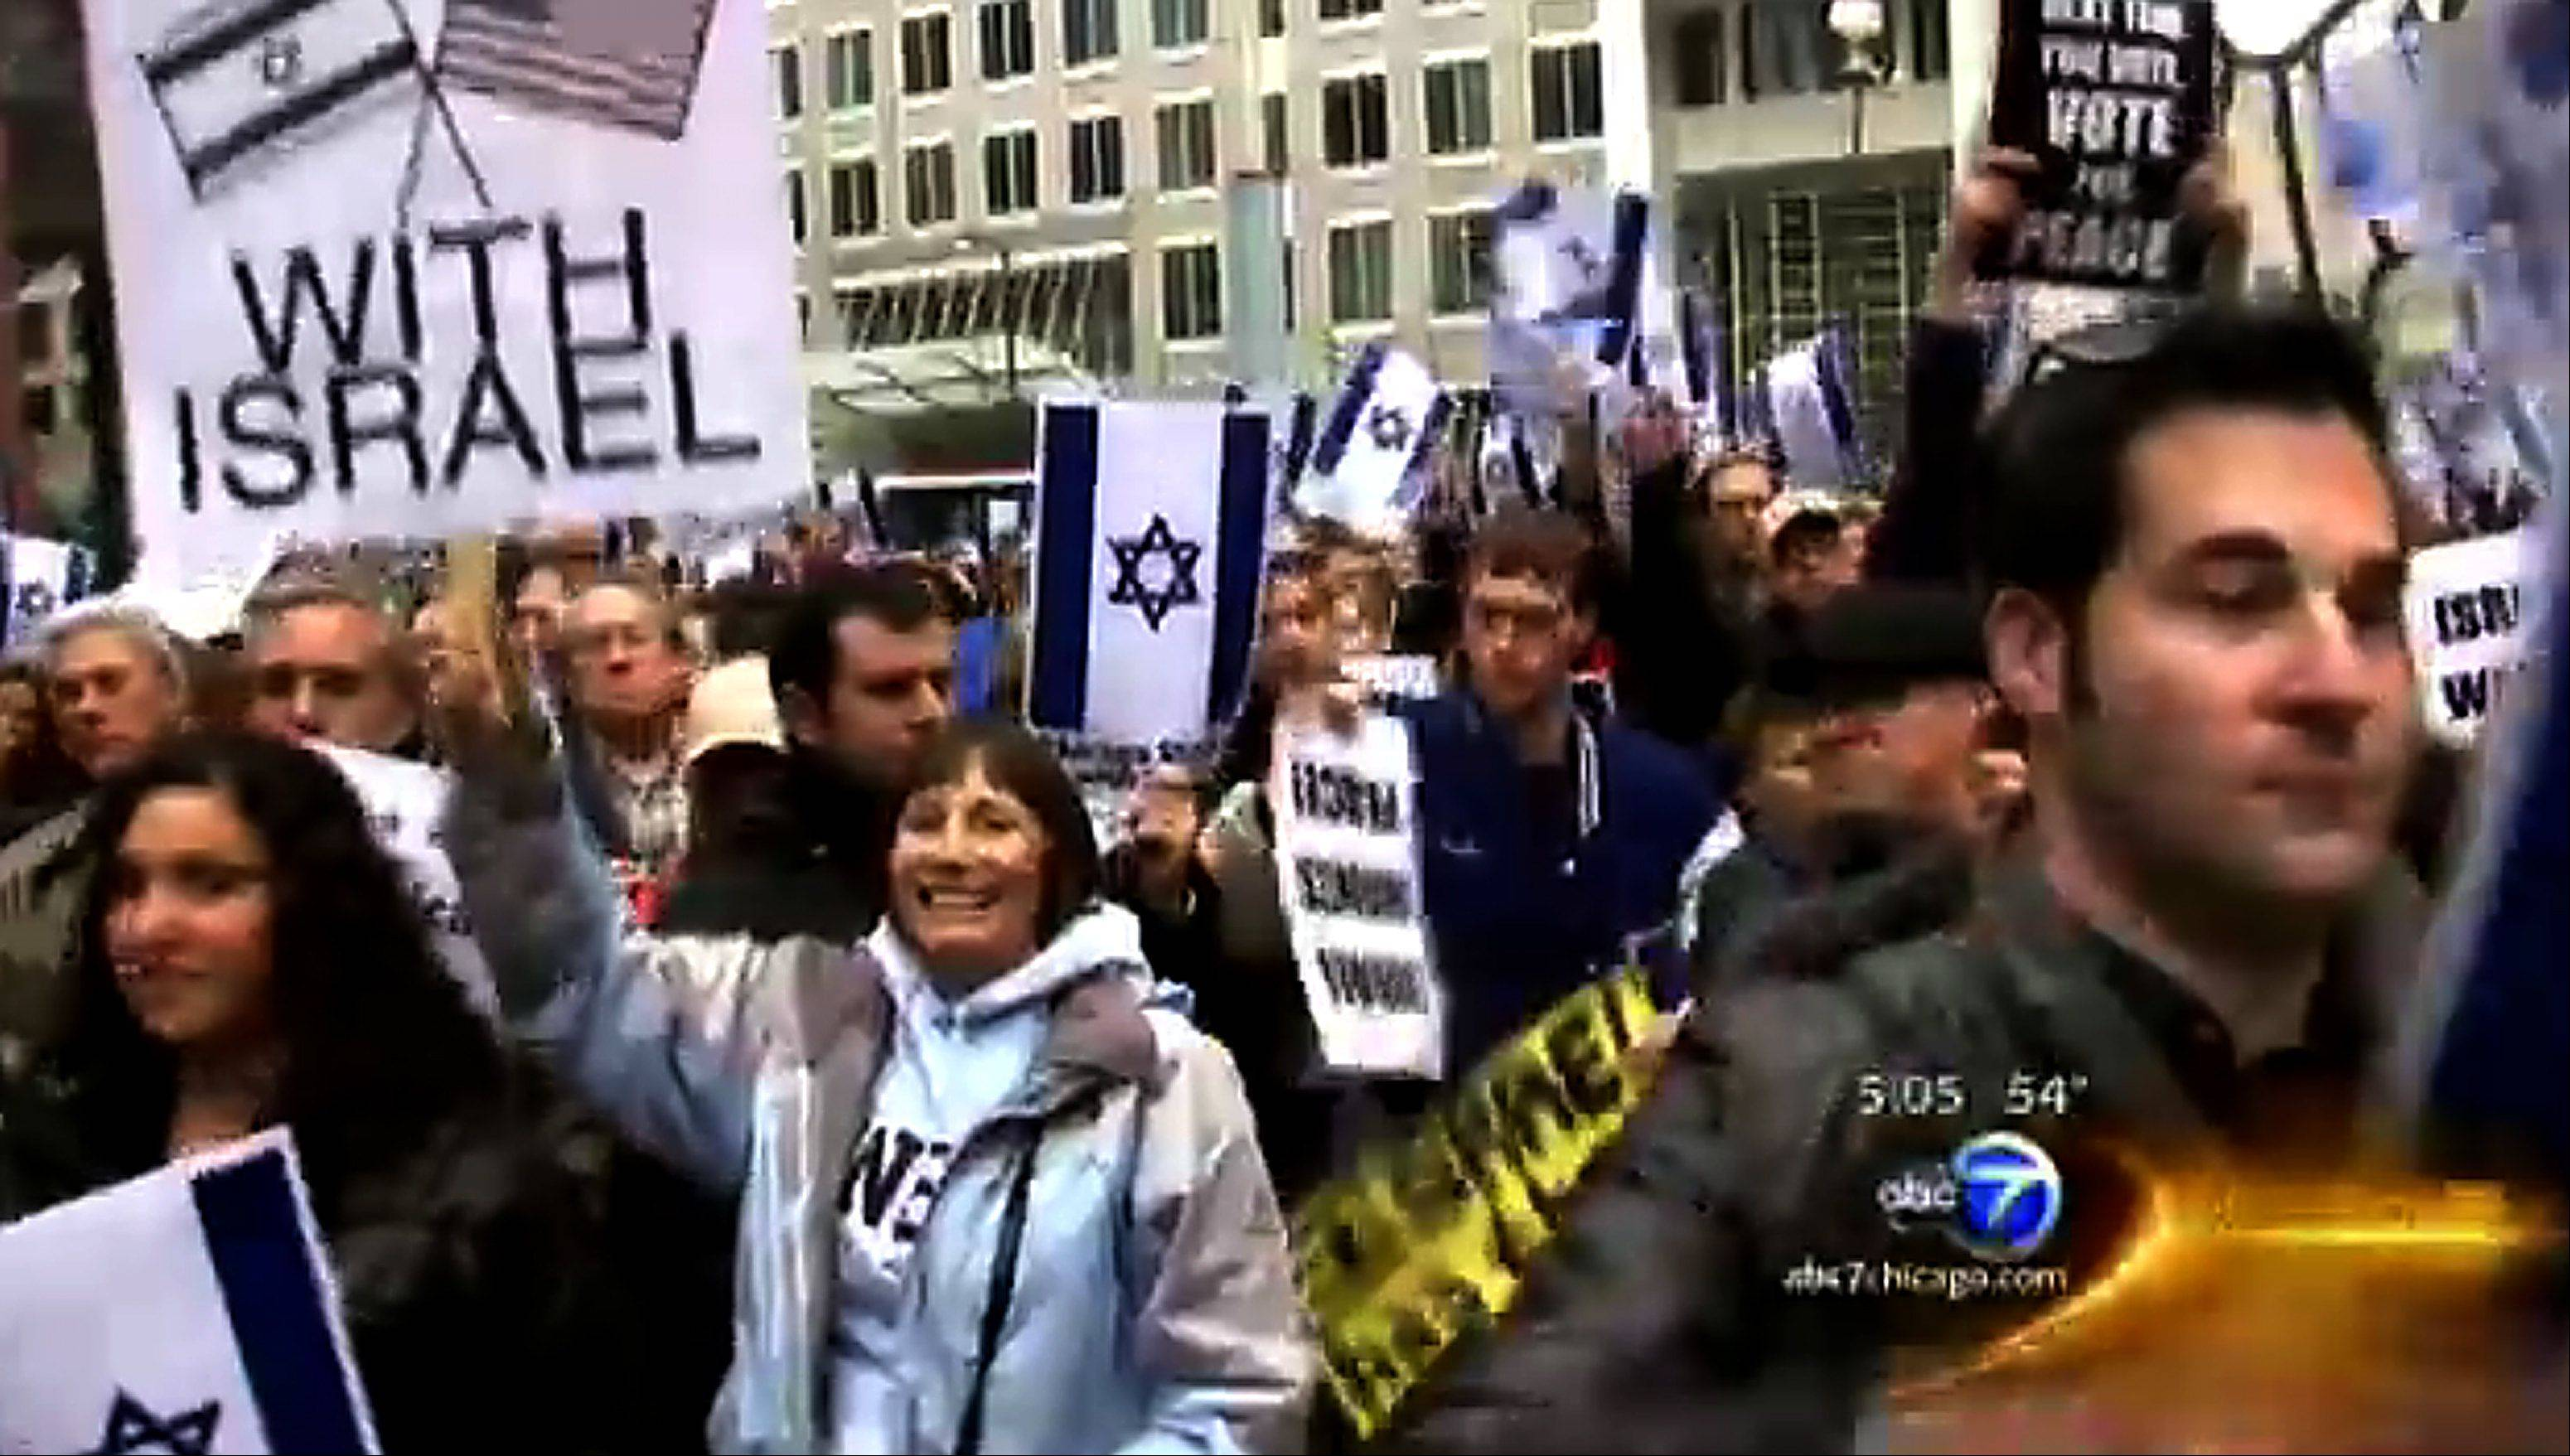 Hundreds from the Chicago area rallied outside the Thompson Center to show their support for Israel Tuesday.